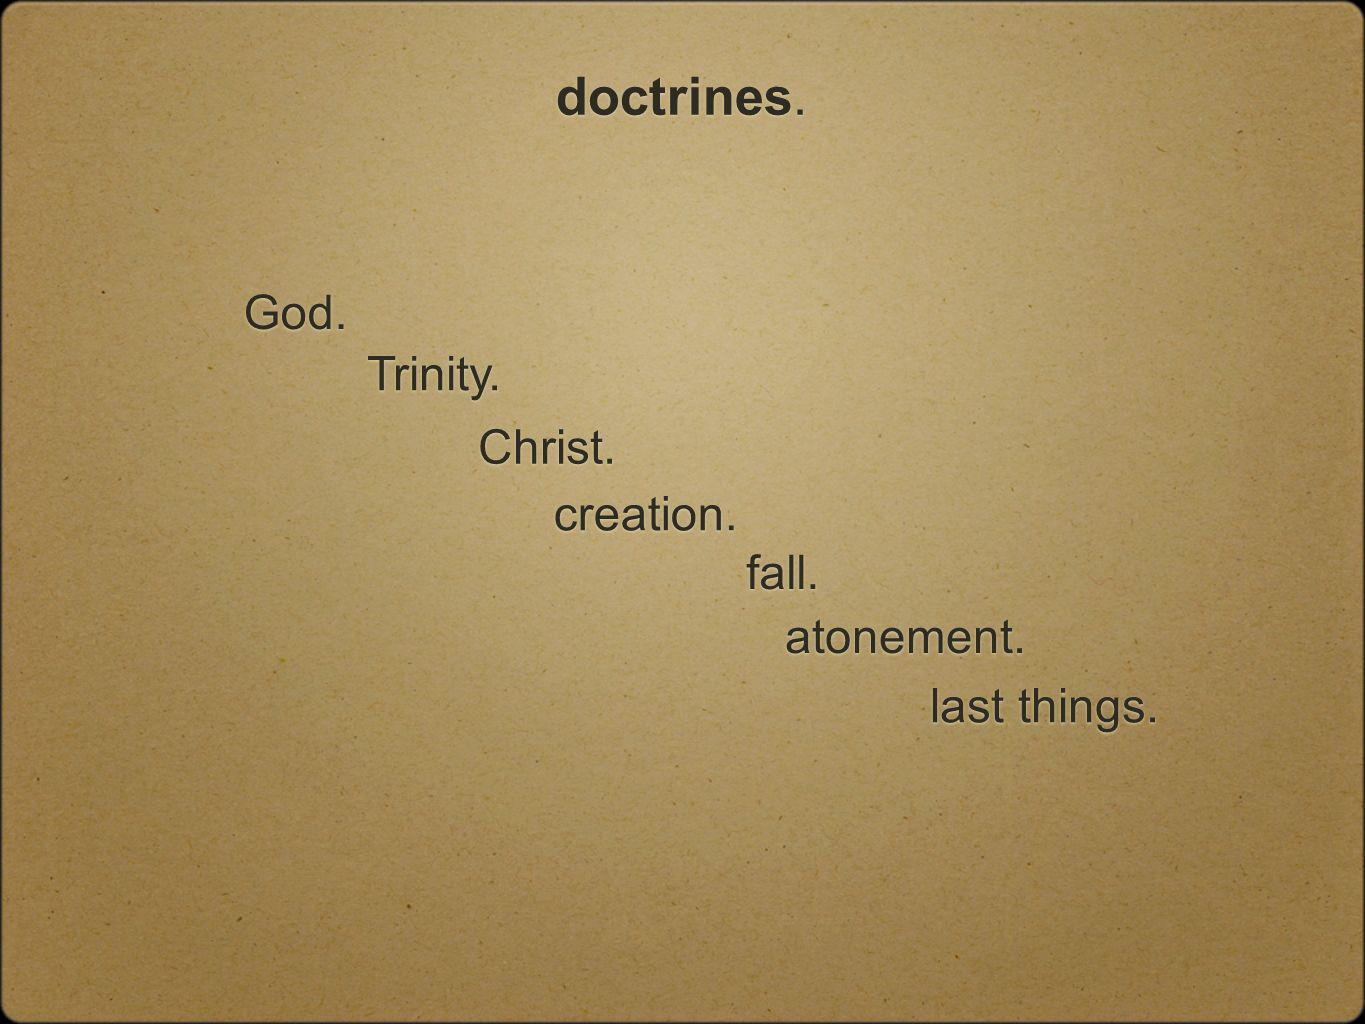 doctrines. God. Trinity. Christ. creation. fall. atonement. last things.